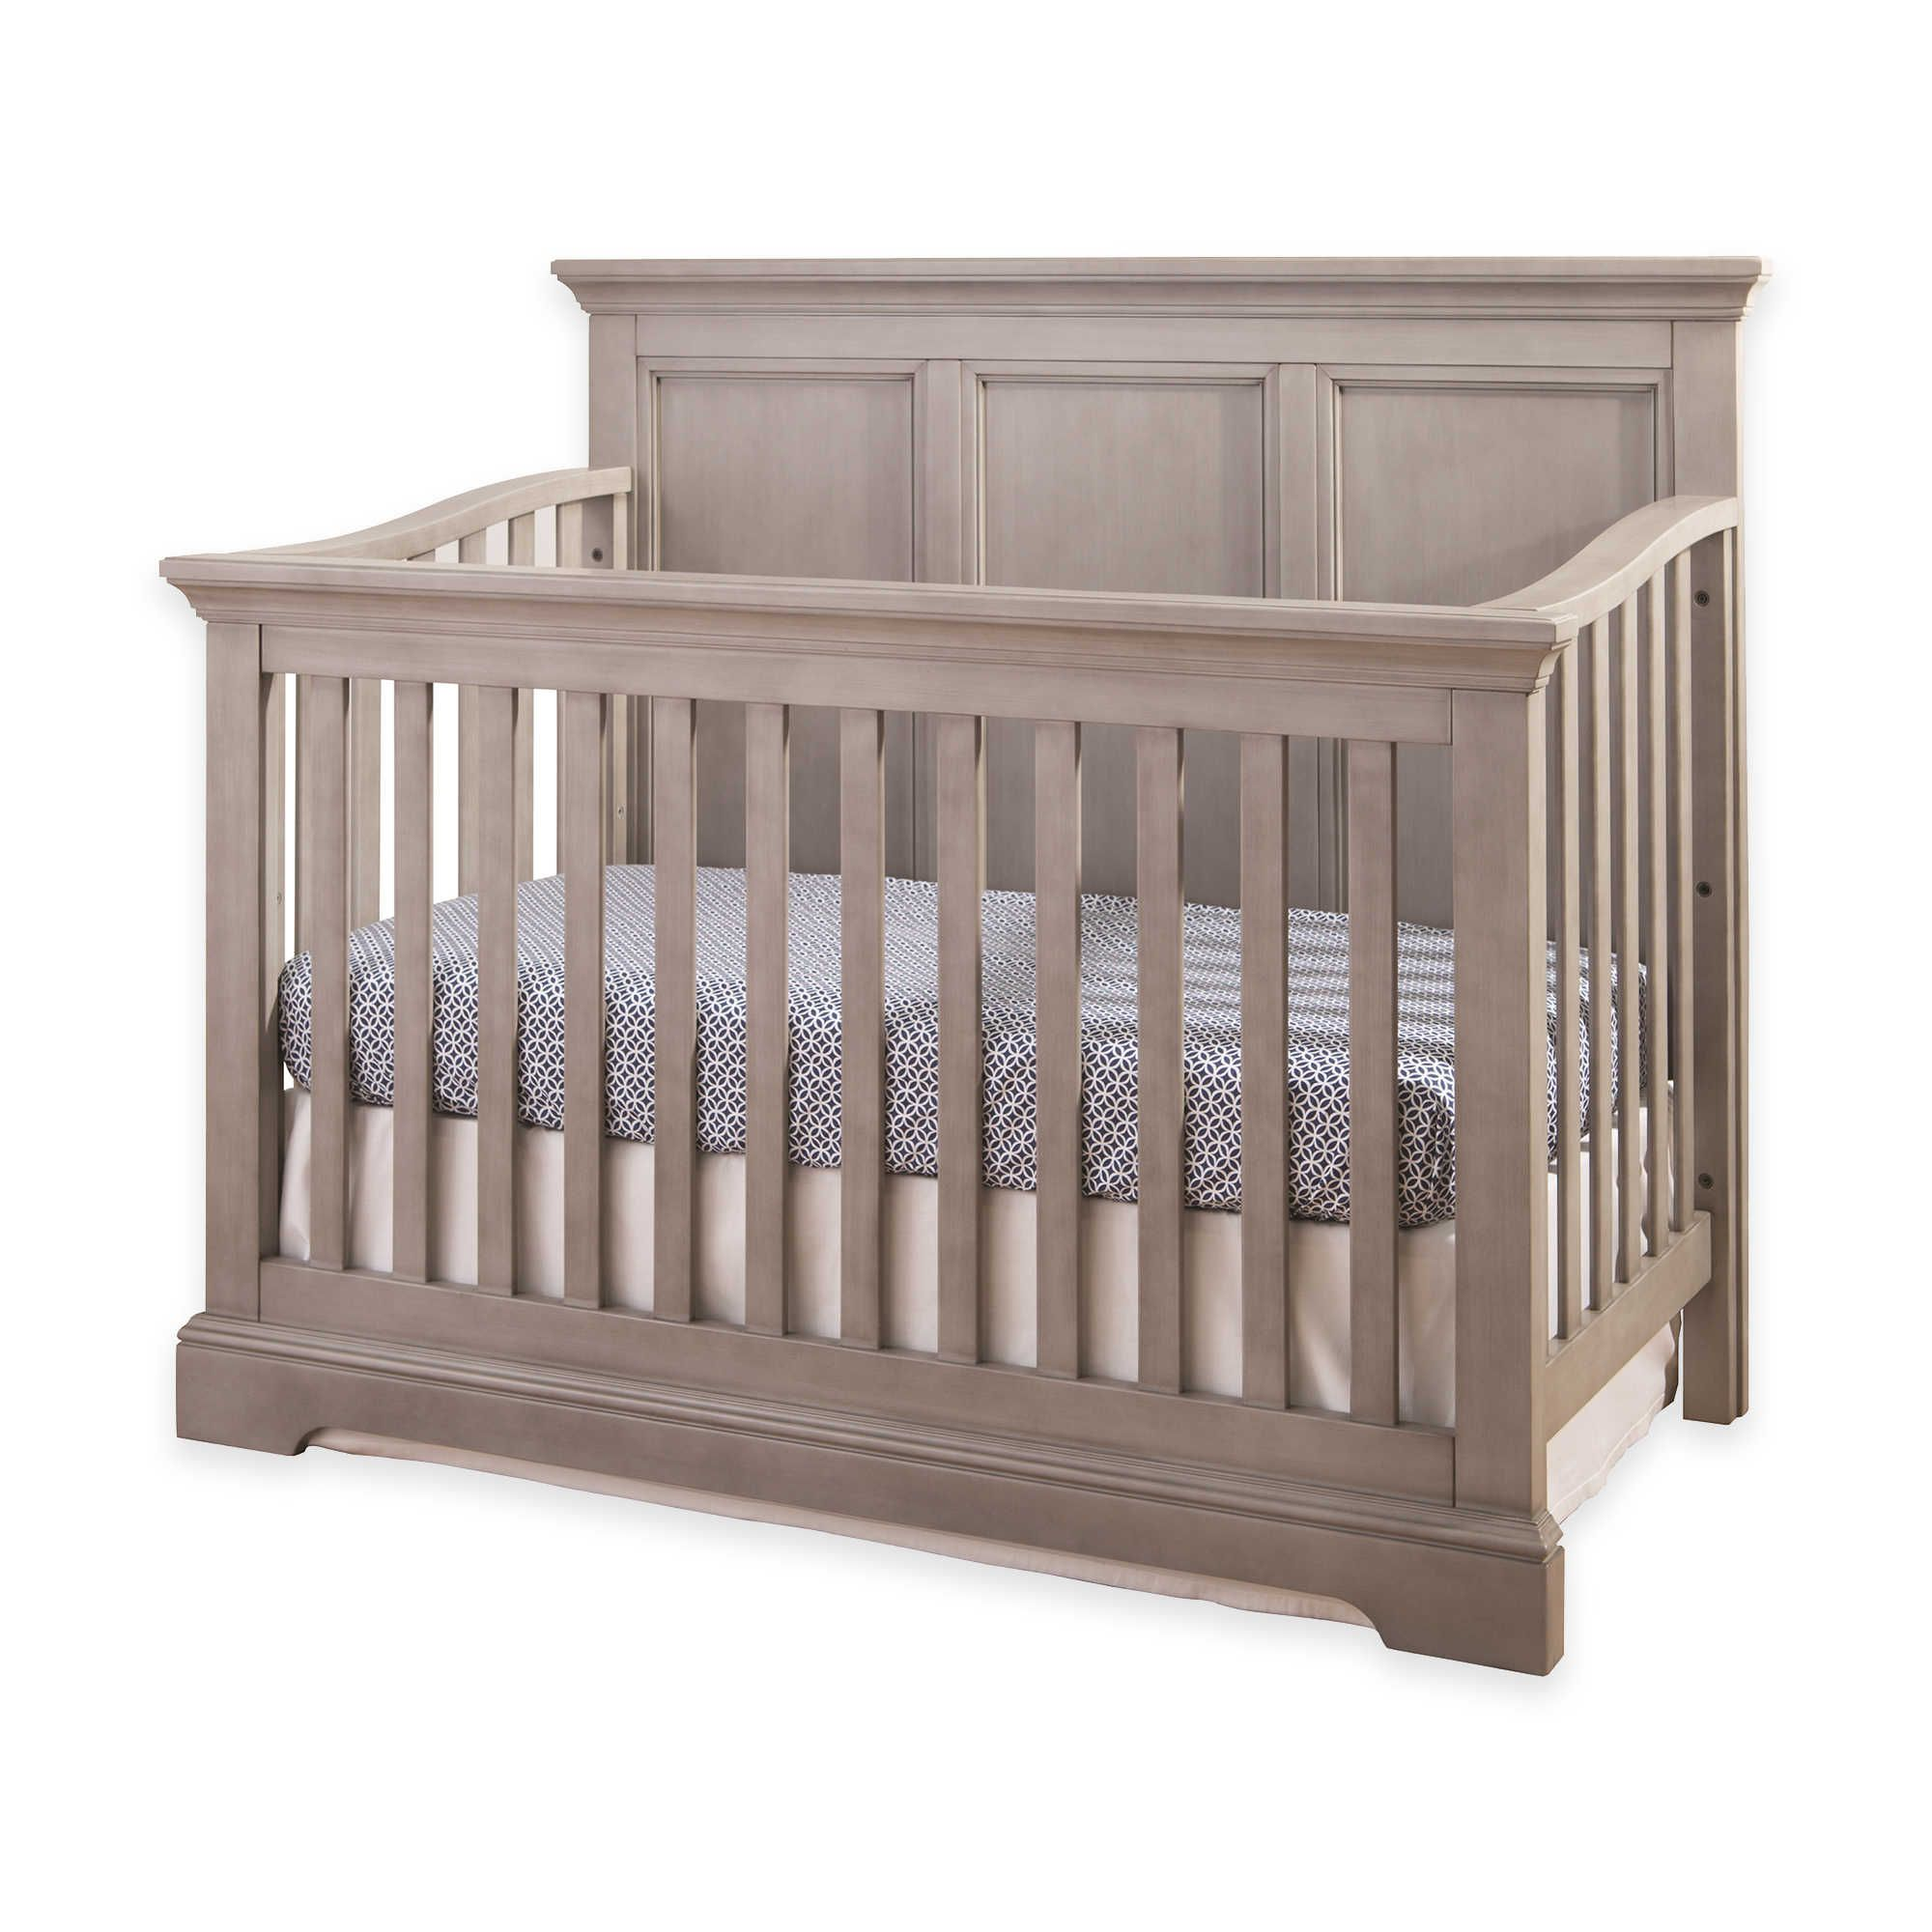 provence turns reviews com bed crib au boori productreview into p cot